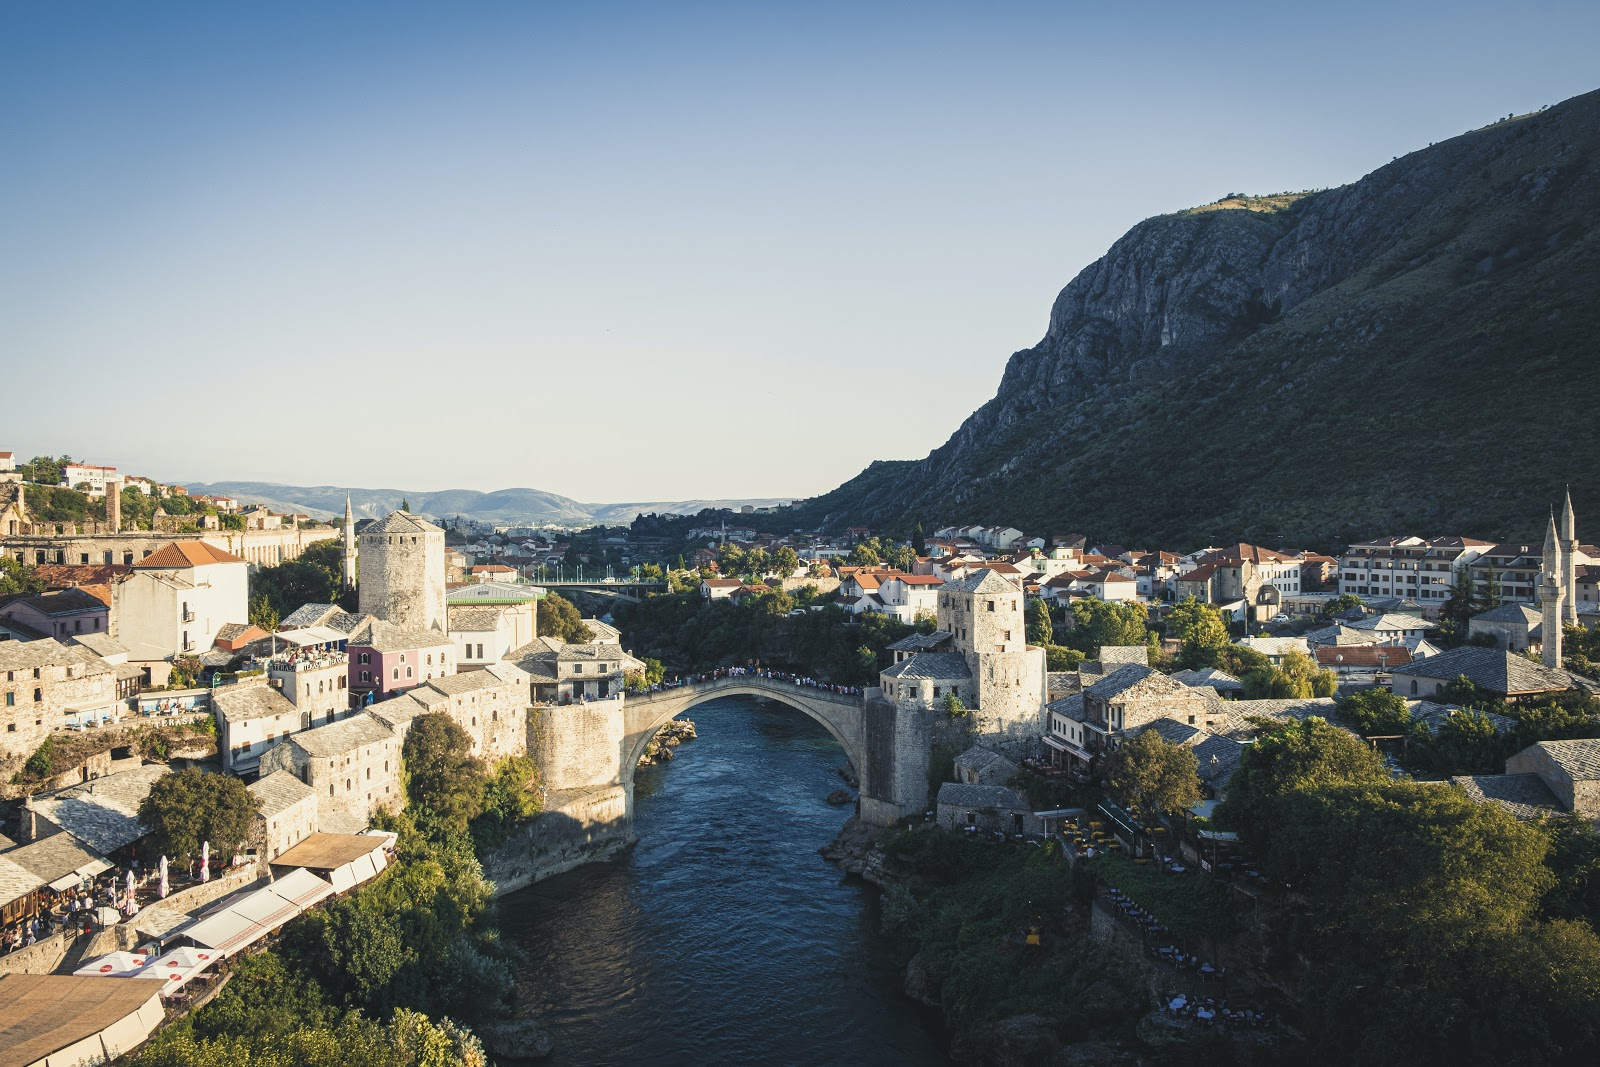 With beautiful blue skies, the picture is a view from above of stunning Mostar with the famous bridge take centre stage.